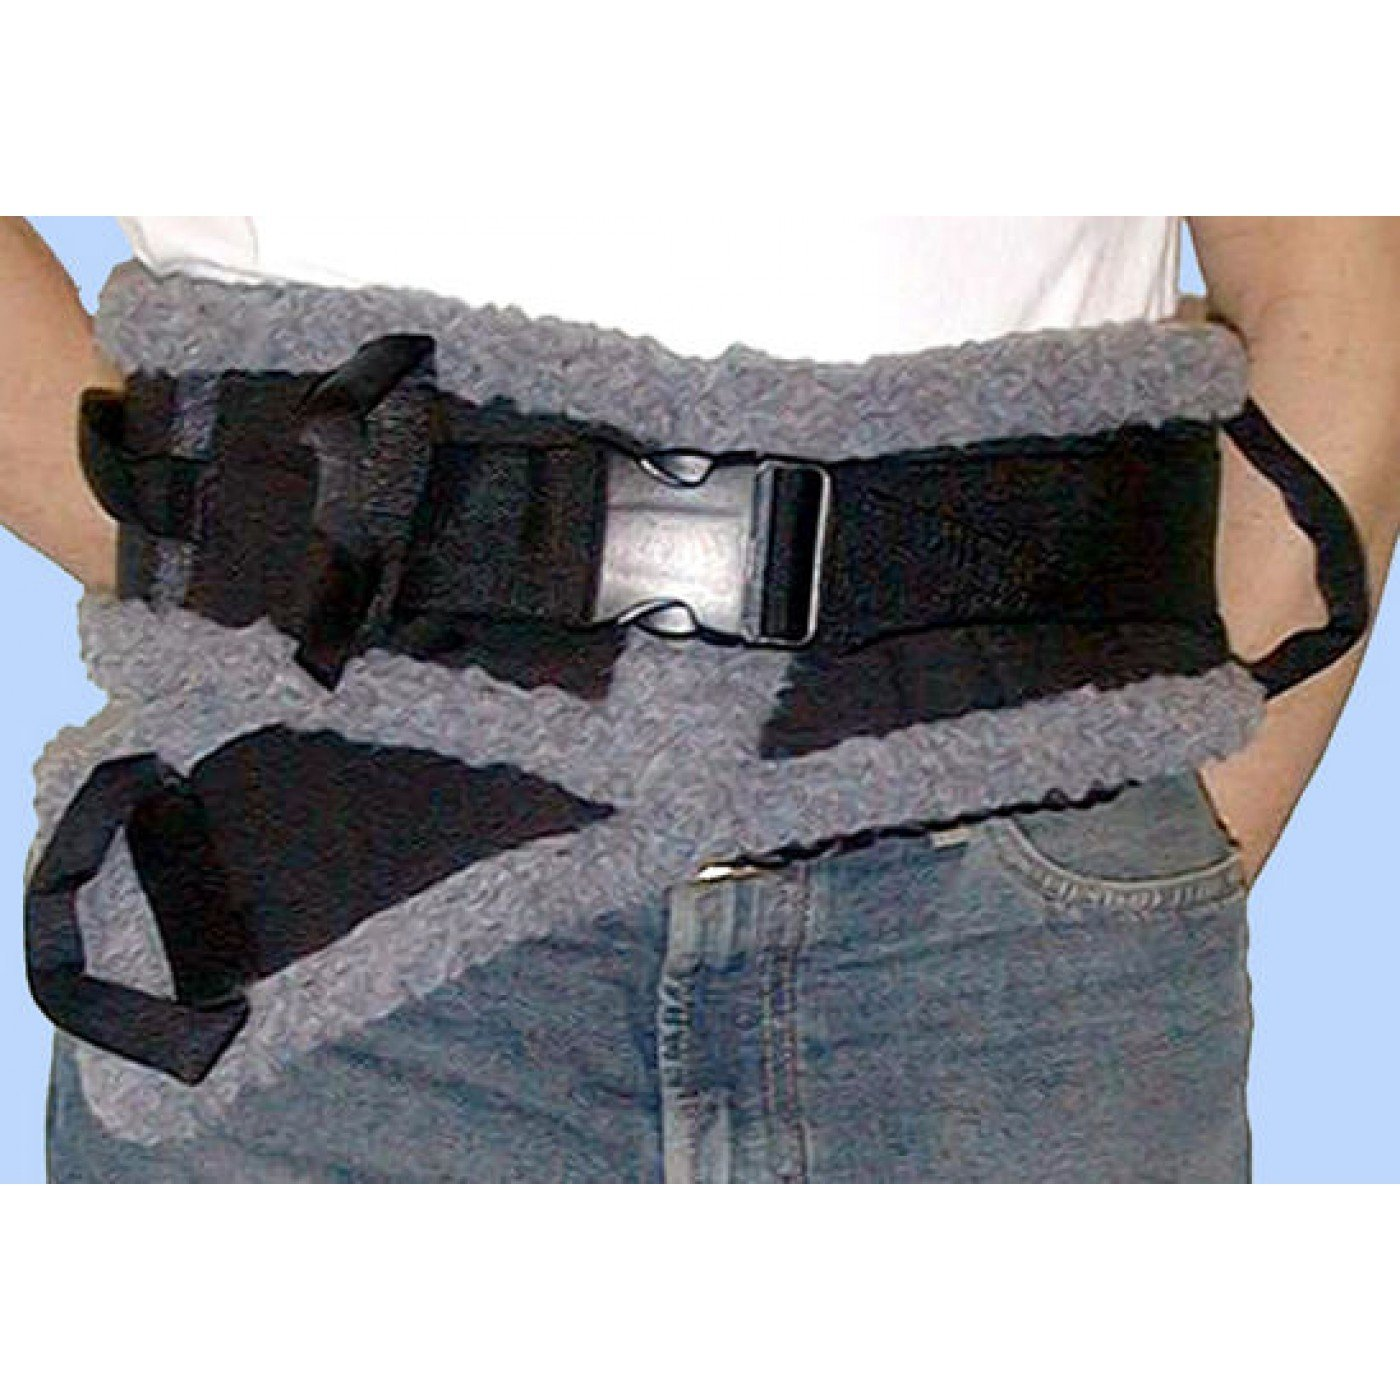 RI6034EA - SafetySure Transfer Belt Medium, 4 ft. L x 4 W, 3/8 Thickness, 32-48 Waist